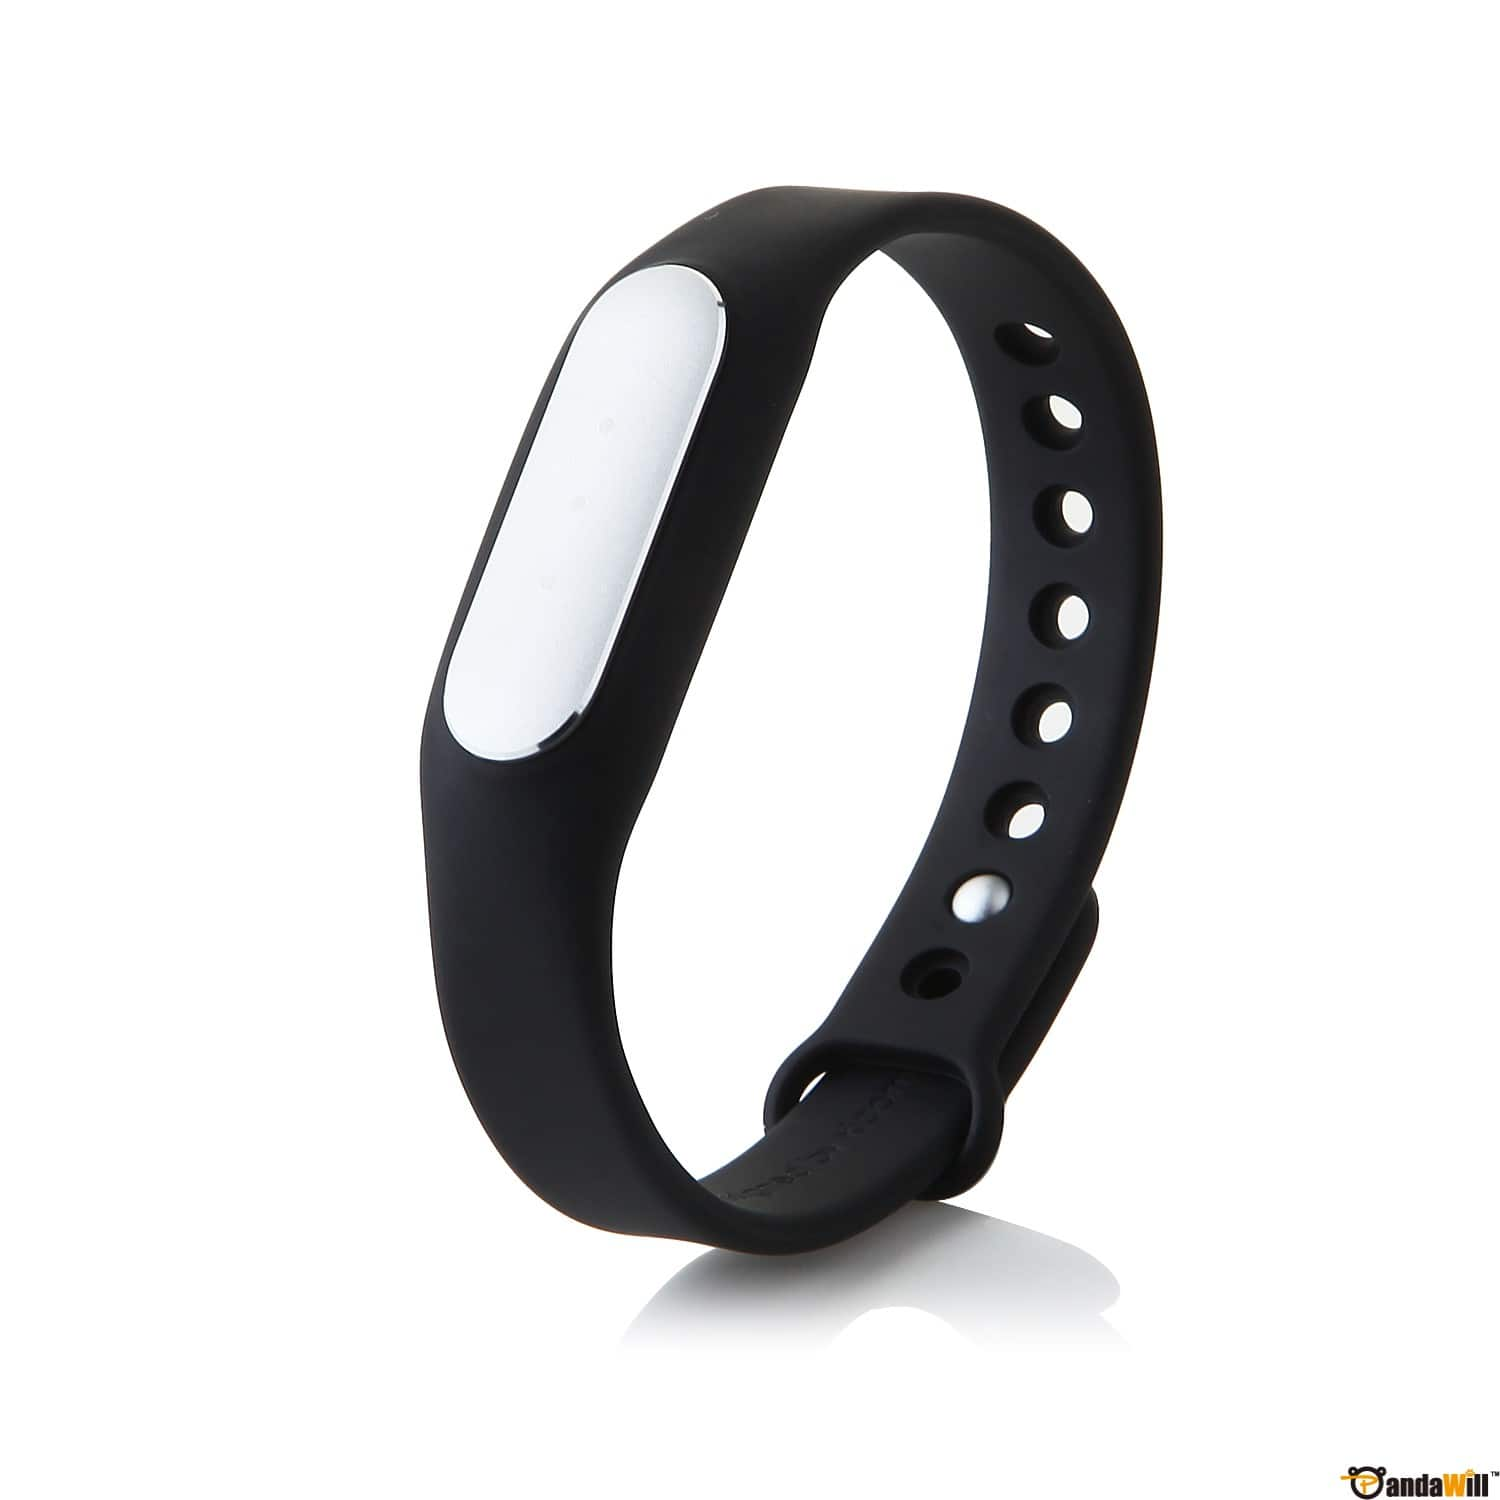 Xiaomi Miband Bluetooth Smart Bracelet for Andrioid or iPhones $15.99 AC FS